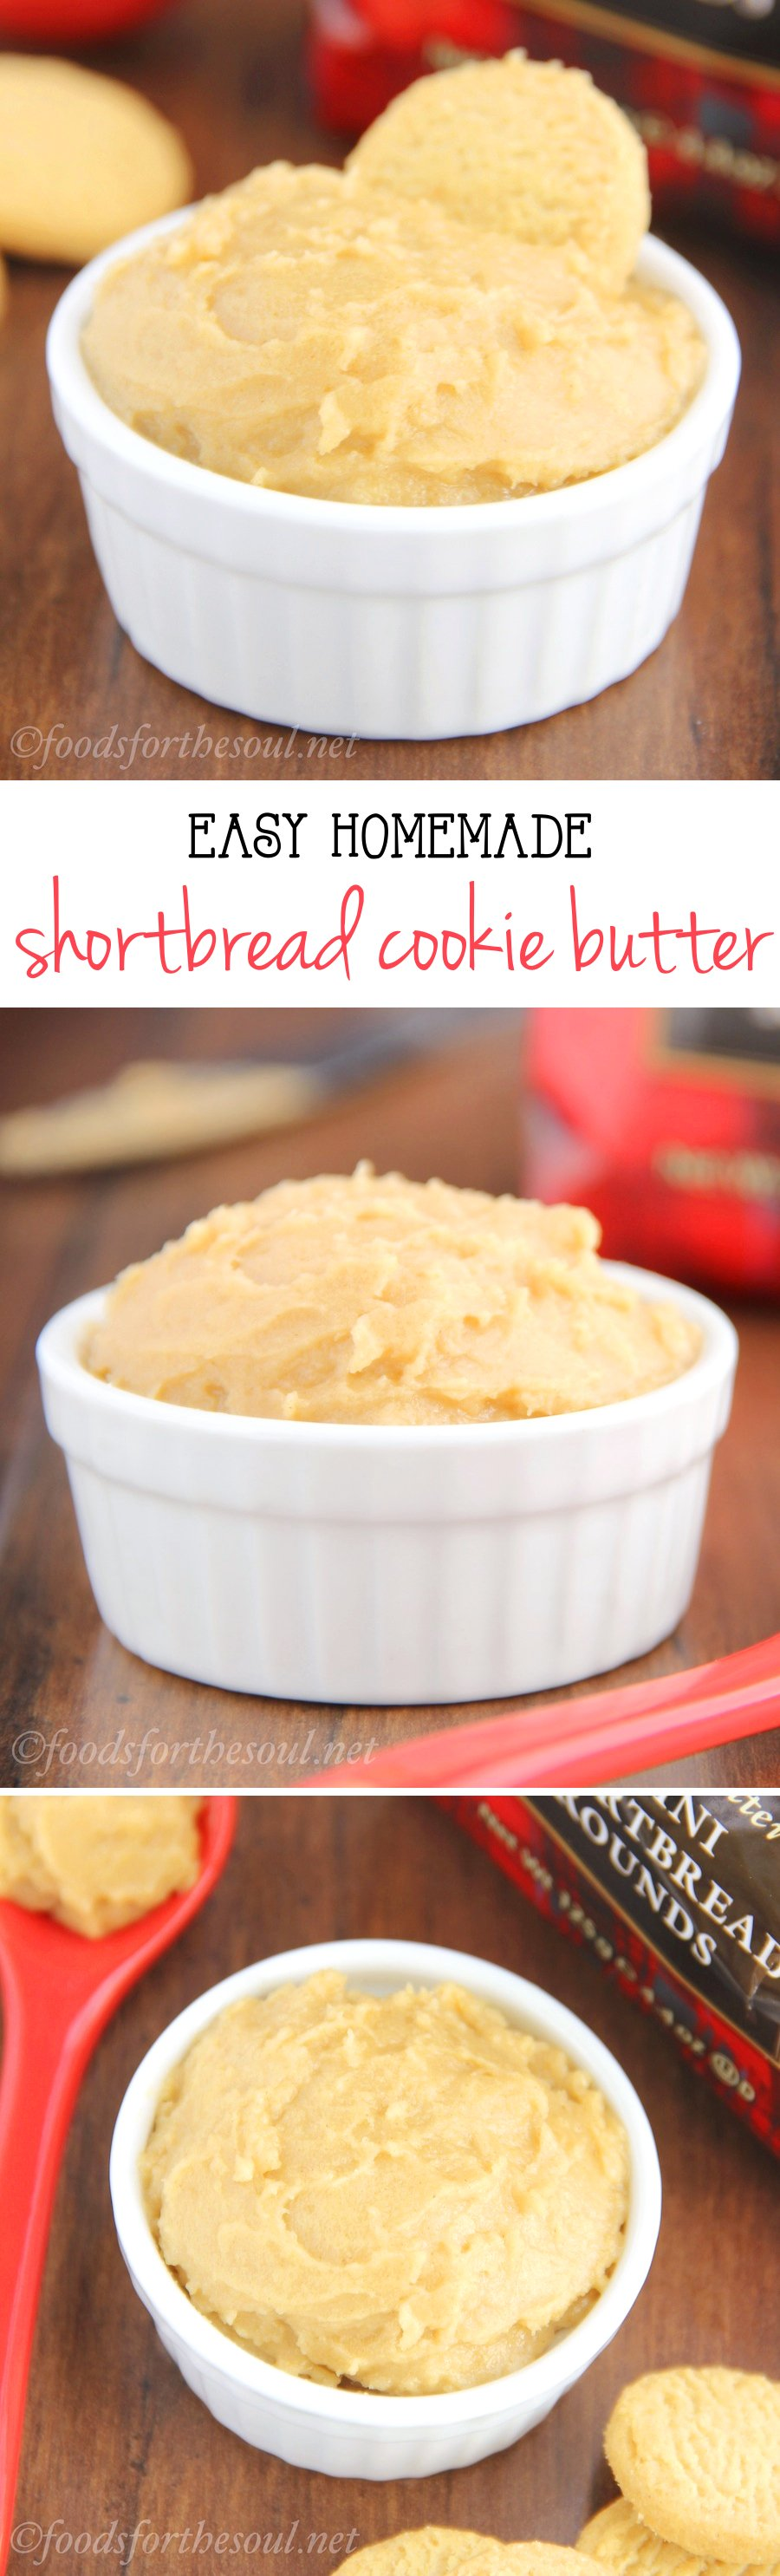 Shortbread Cookie Butter Spread -- a homemade version of Biscoff Spread! 4 ingredients + 2 minutes = seriously addictive.